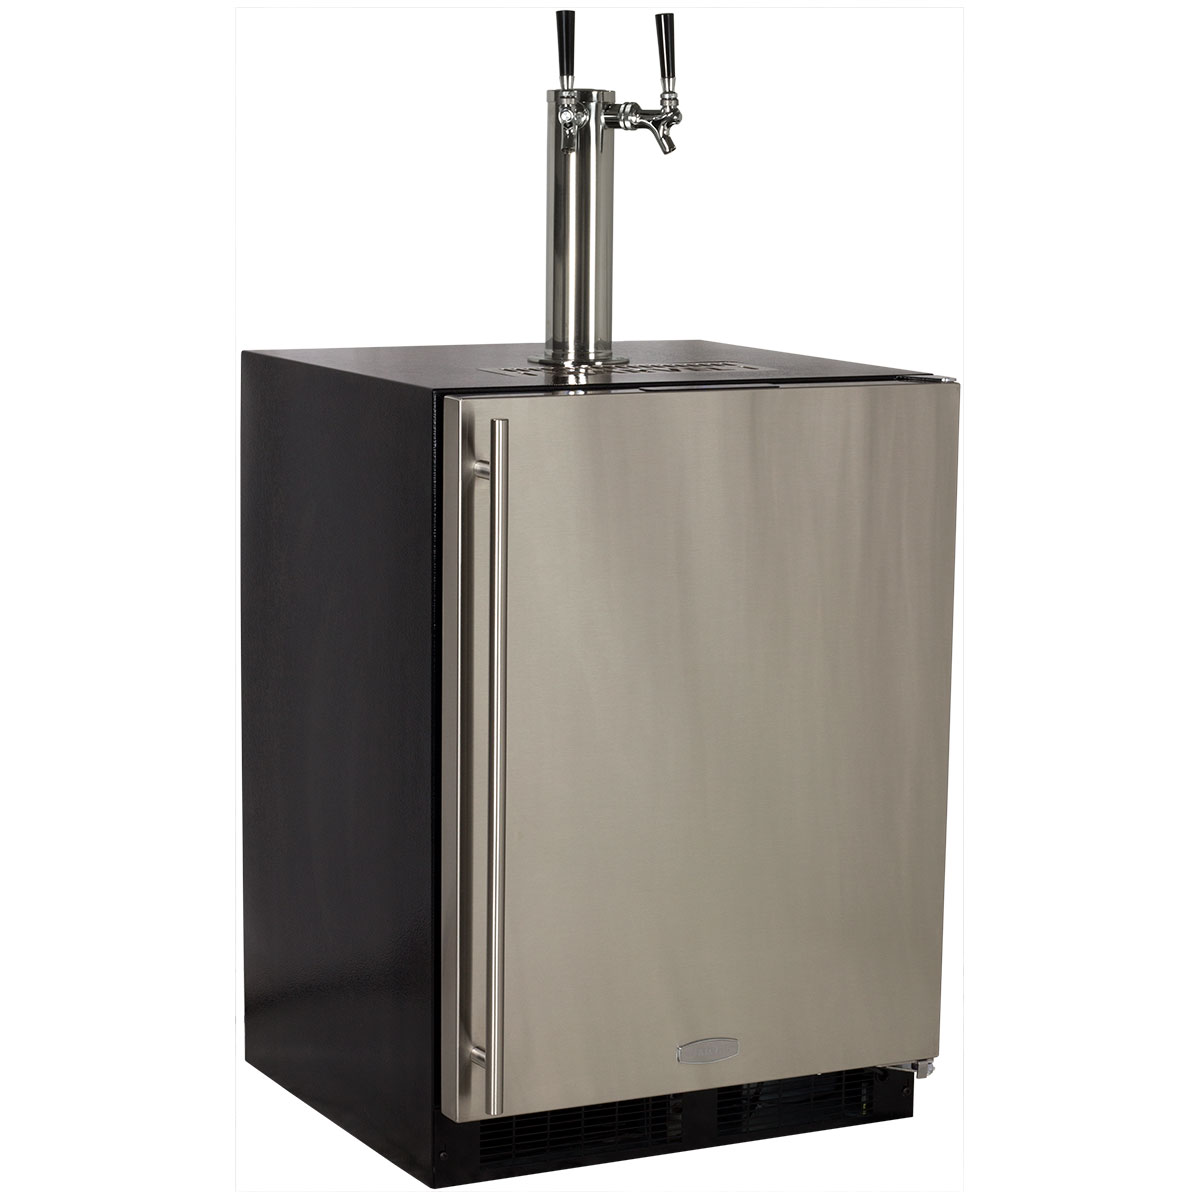 Marvel  Marvel Built-In Indoor Twin Tap Beer Dispenser-Solid Stainless Steel Door Right Hinge